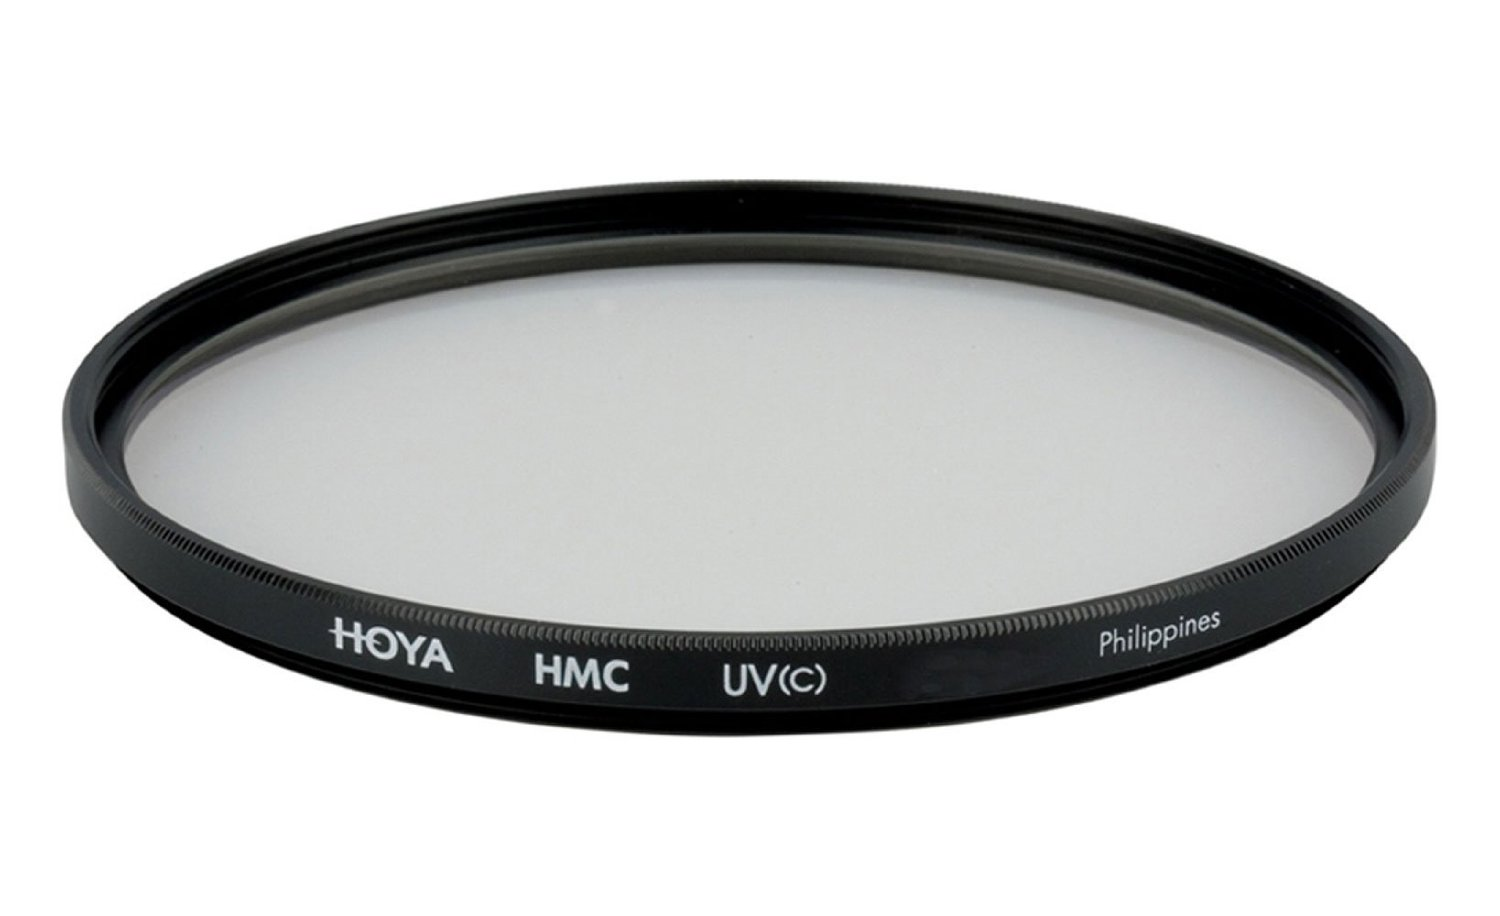 Hoya 82mm UV(0) HMC Multi-Coated Filter